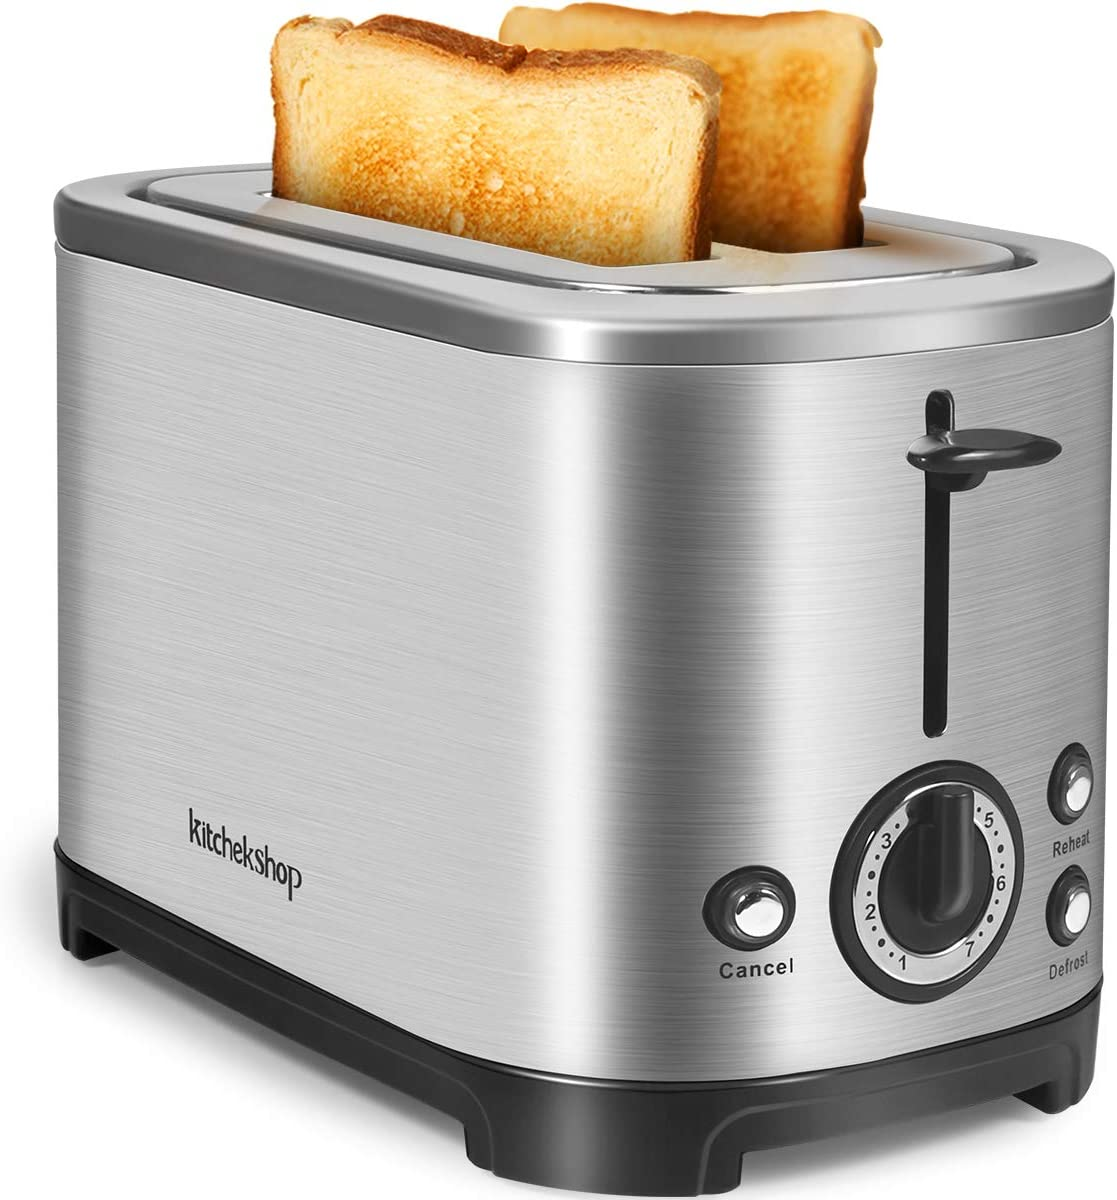 2 Slice Toaster, 1.3 Inches Wide Slot Toaster with 7 Shade Settings and Double Side Baking, Compact Bread Toaster with Removable Crumb Tray, UL Certified, Defrost Reheat Cancel Function